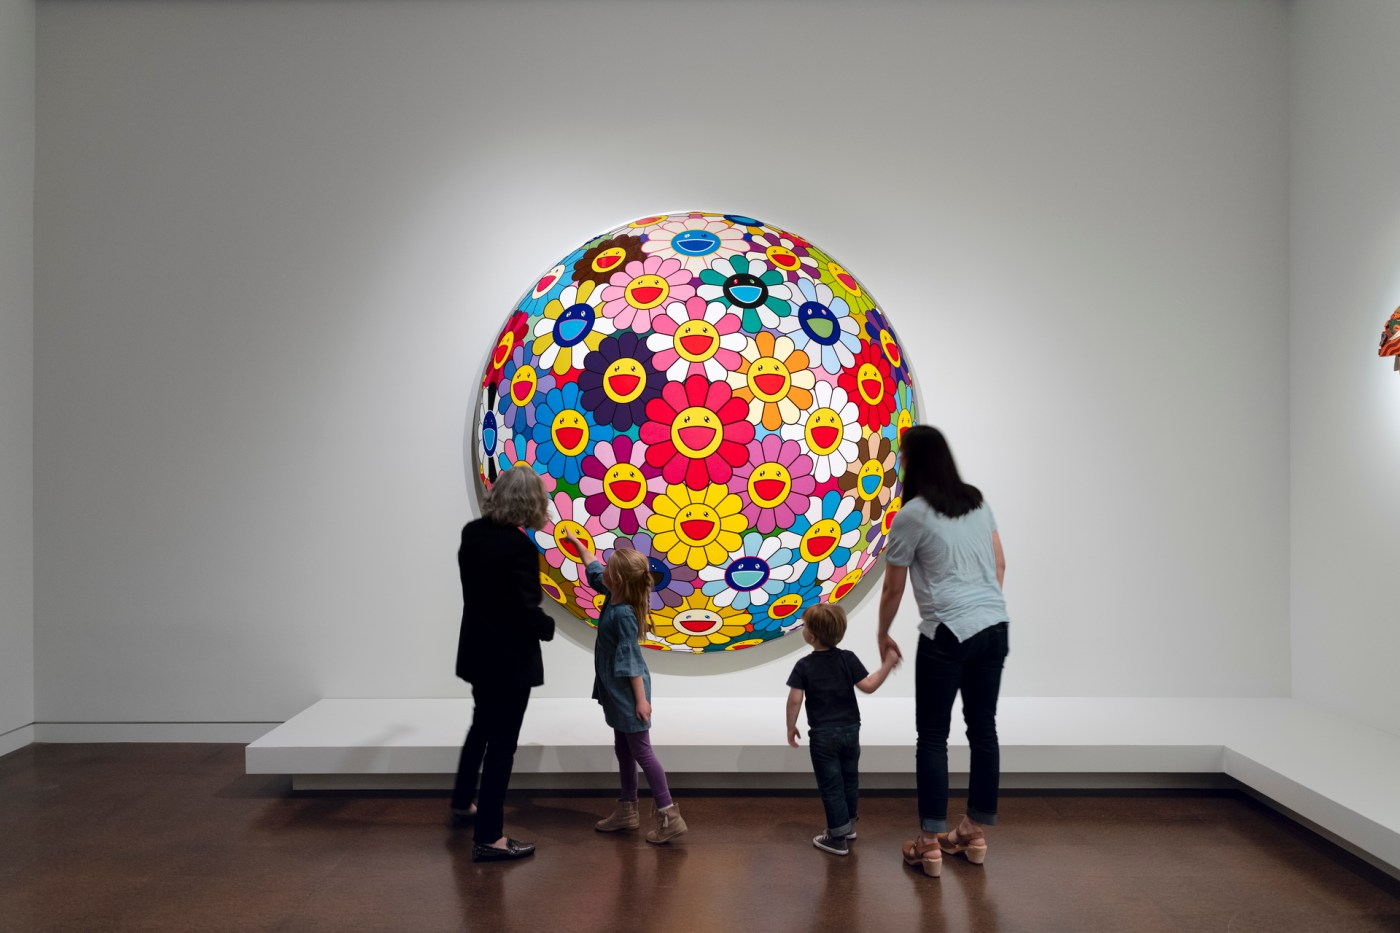 Object of the Week: Flower Ball